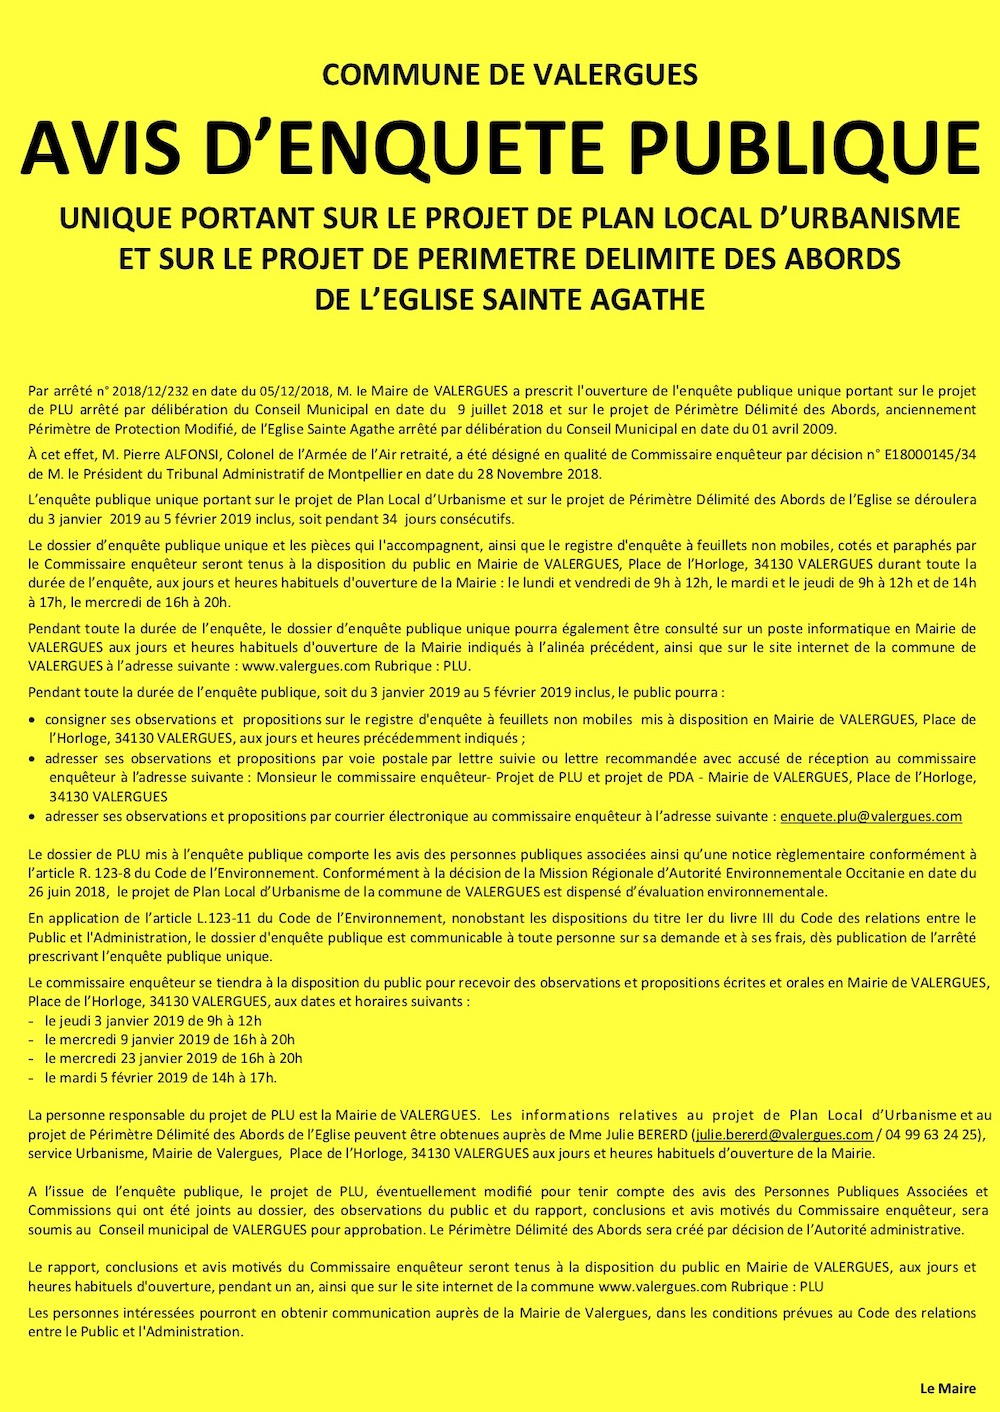 AfficheEPprojet 2 V1 corr CE 1 POUR VALIDATION 1